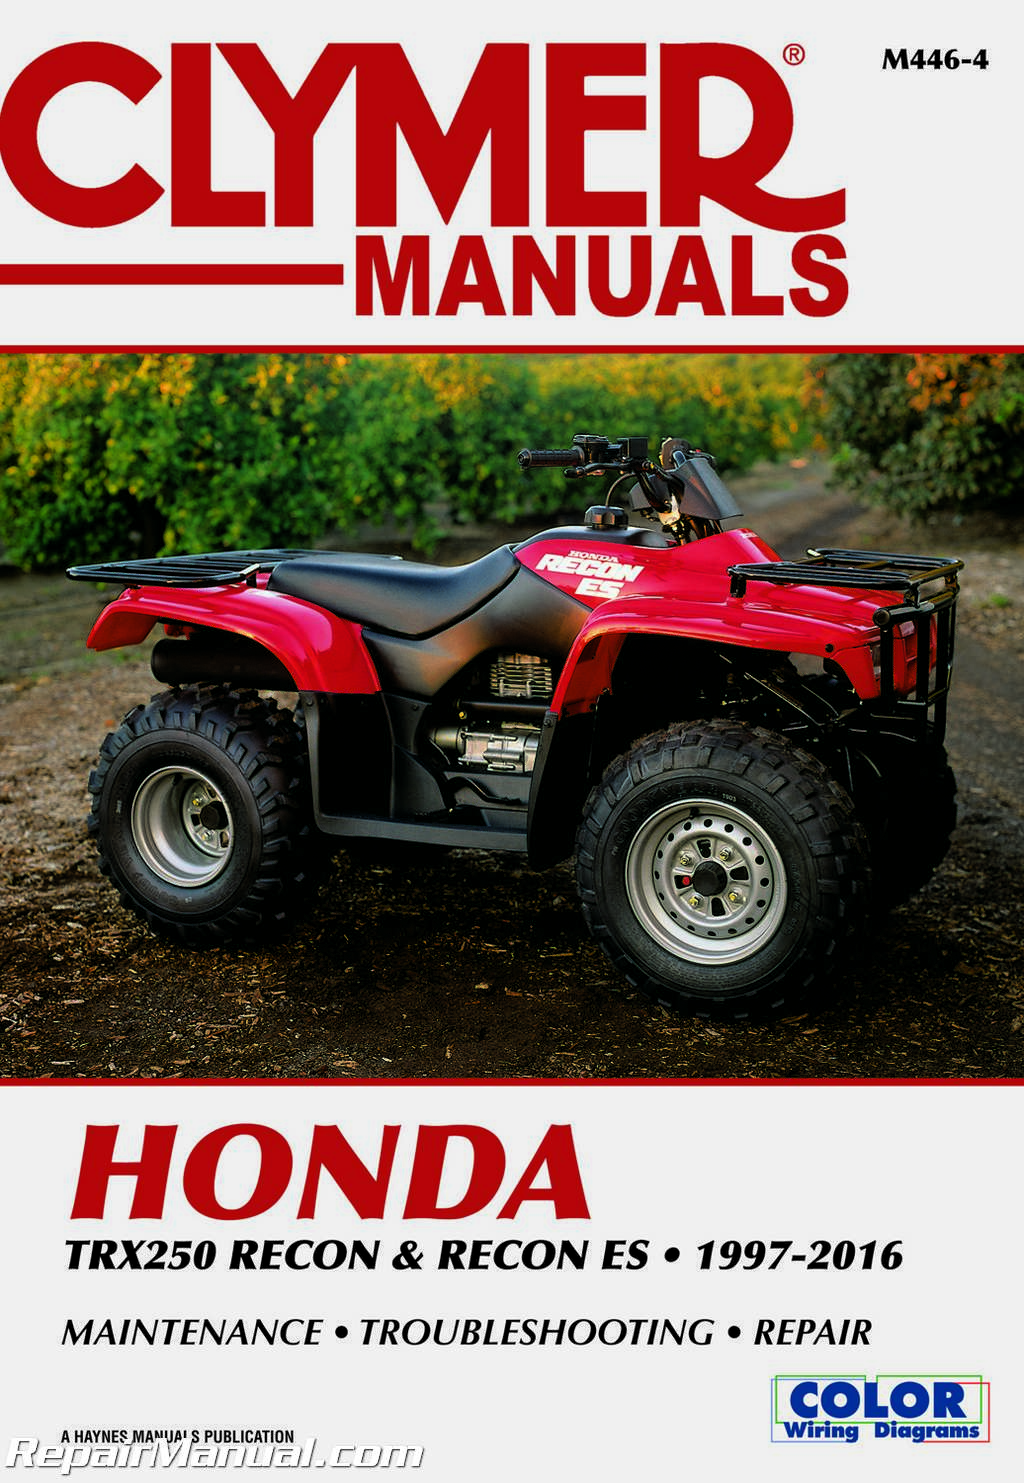 1997 2016 honda trx250 recon es atv repair manual by clymer m446 4 rh ebay com 2013 Honda 250 ATV ATV Honda TRX 250 Recon